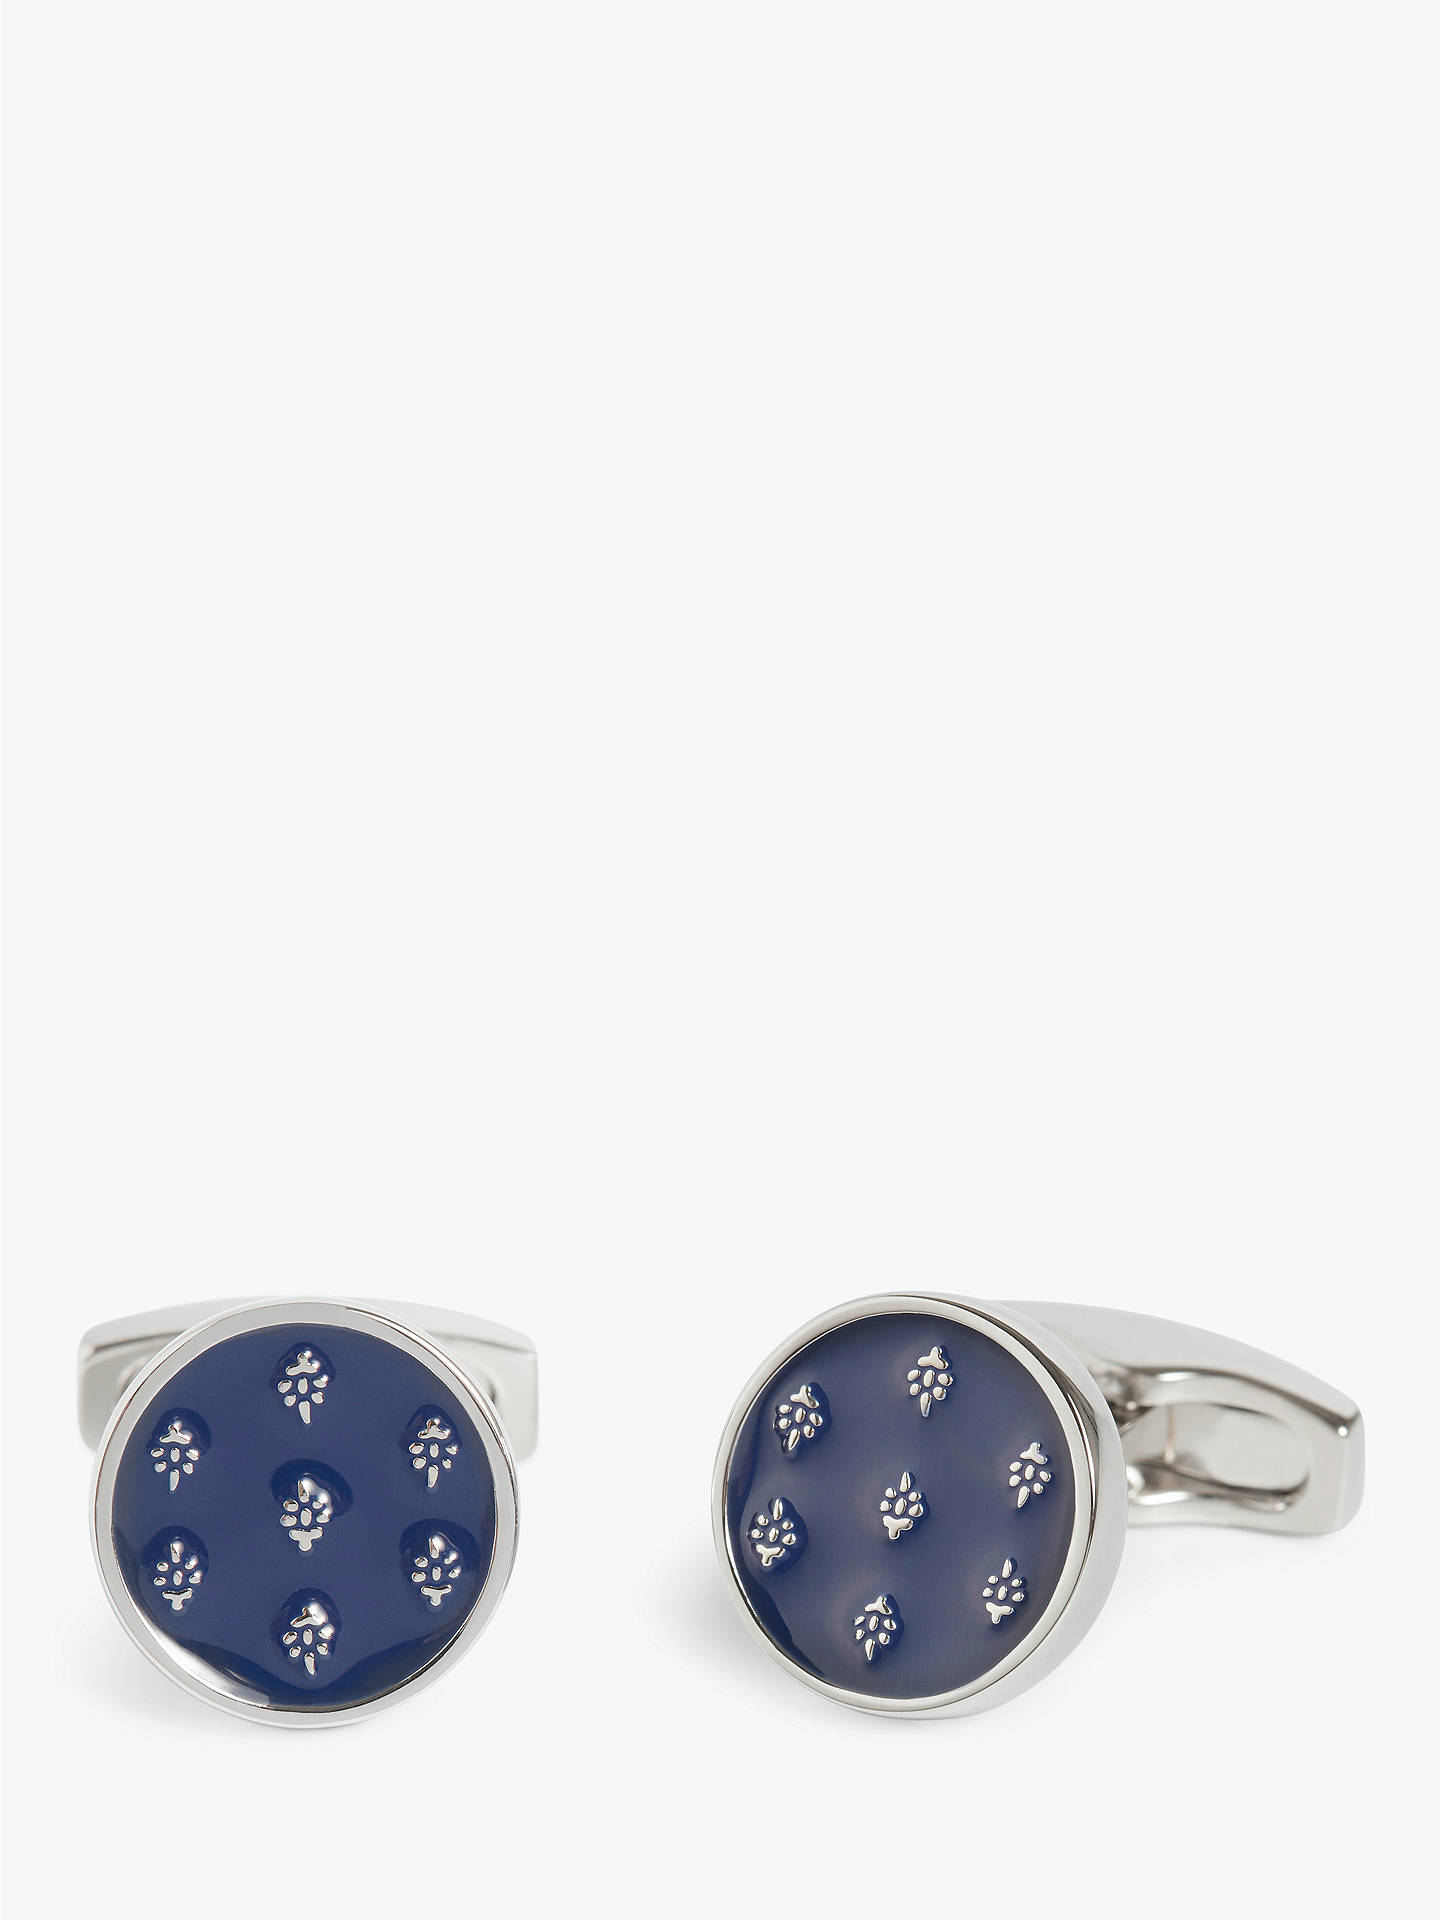 Buy Simon Carter for John Lewis & Partners Archive Enamel Ditsy Cufflinks, Navy Online at johnlewis.com